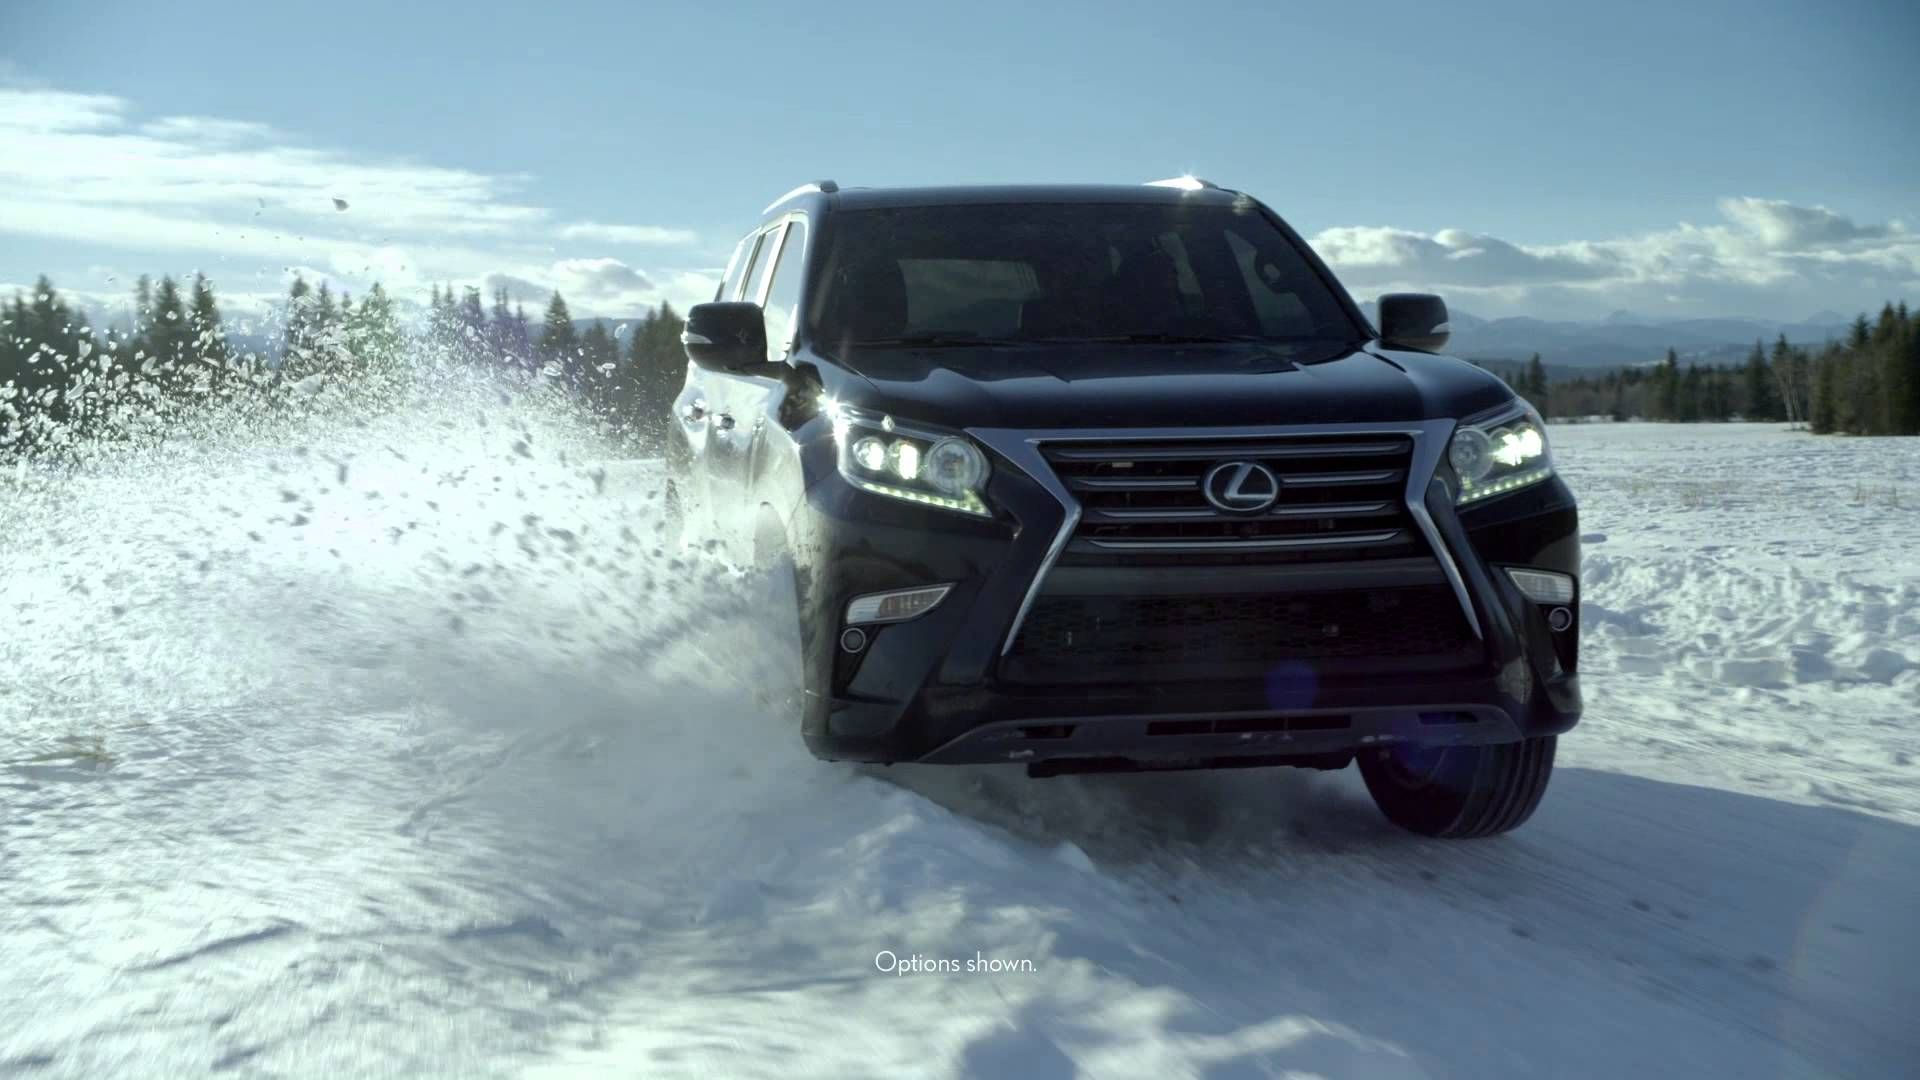 Acura 2016 tlx giddy up commercial song by bishop acuratlx bishop acura commercial song automotive commercials pinterest